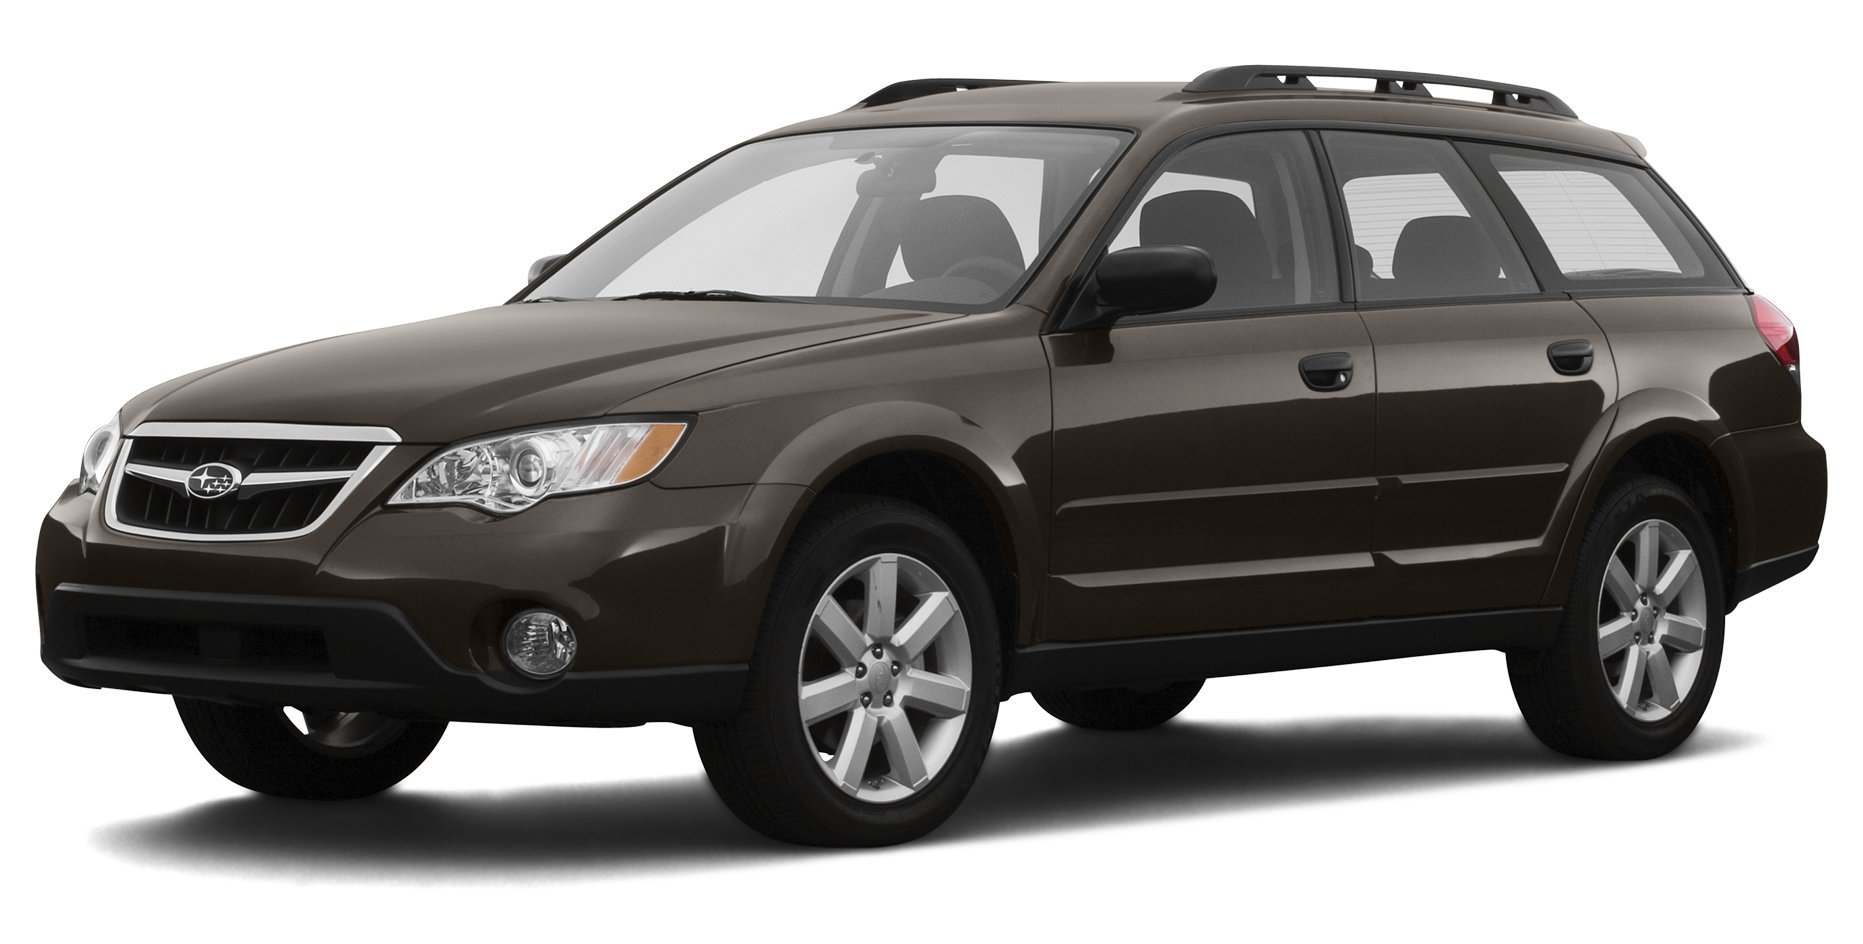 2008 subaru outback reviews images and specs. Black Bedroom Furniture Sets. Home Design Ideas